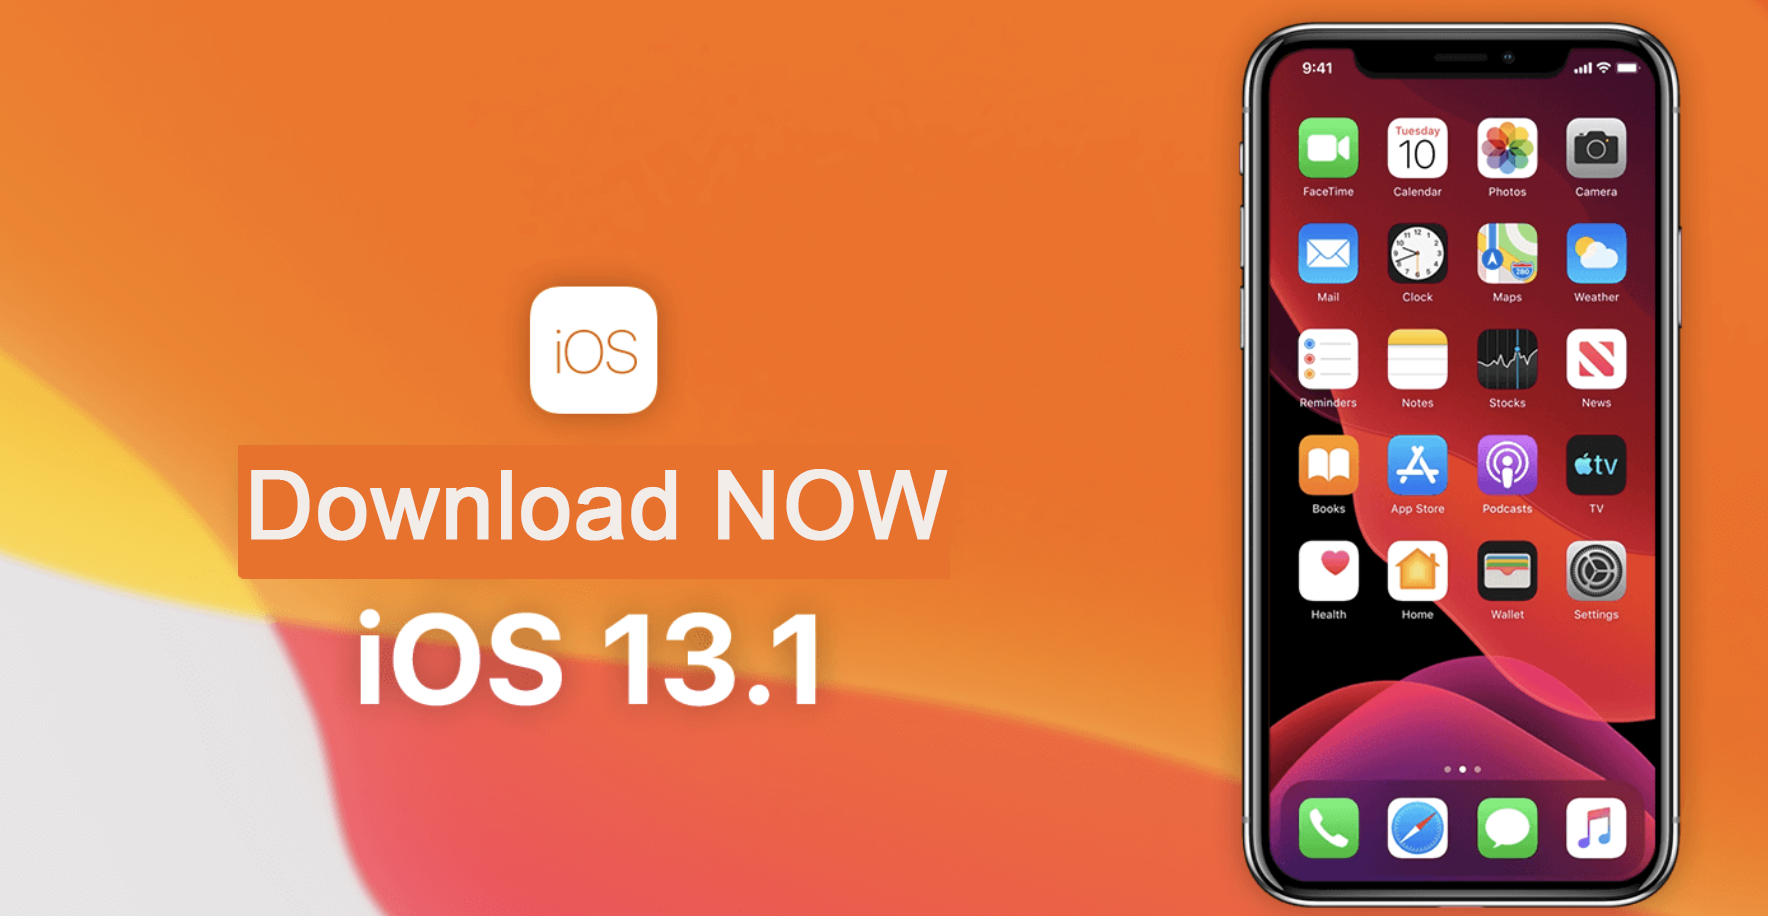 iOS 13.1 Arrived today, download is recommended to every iPhone user